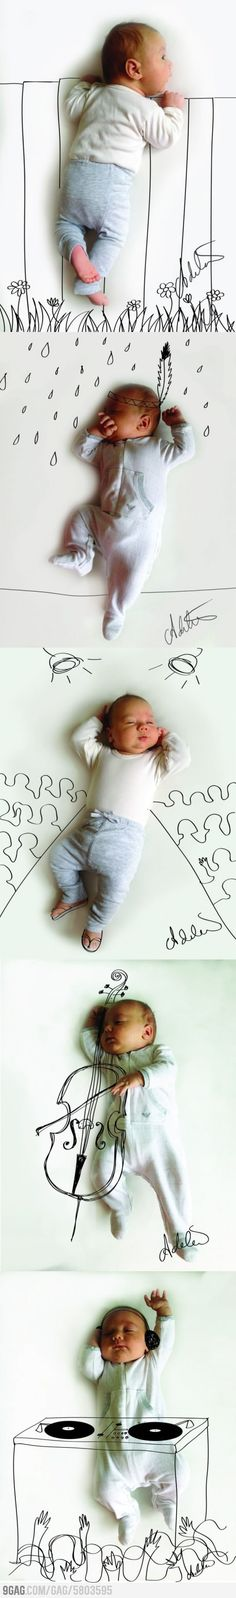 for my children...first grandchild will have pics taken like this! :)